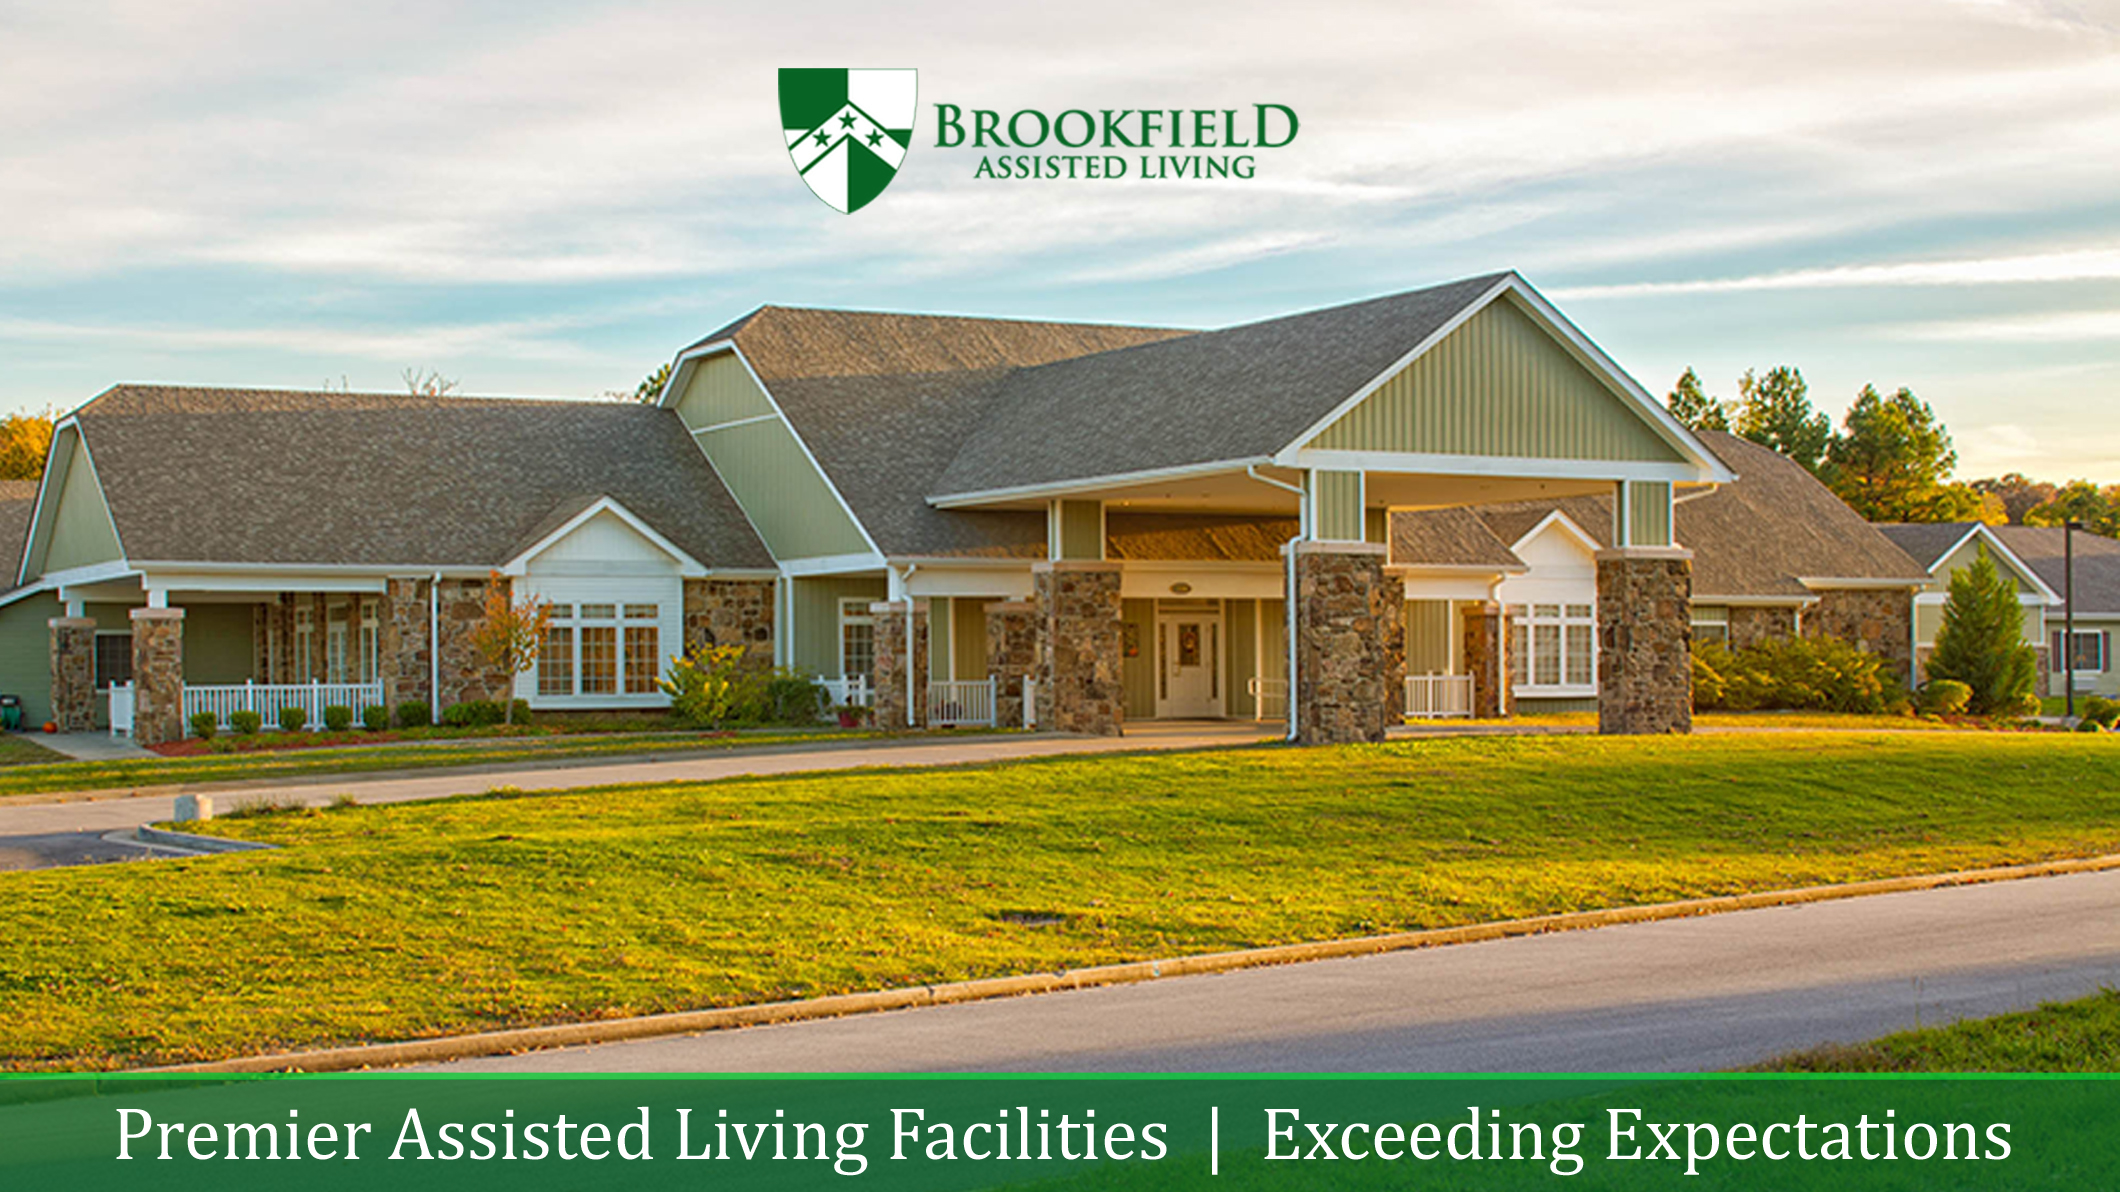 Brookfield Senior Living and Memory Care image 3